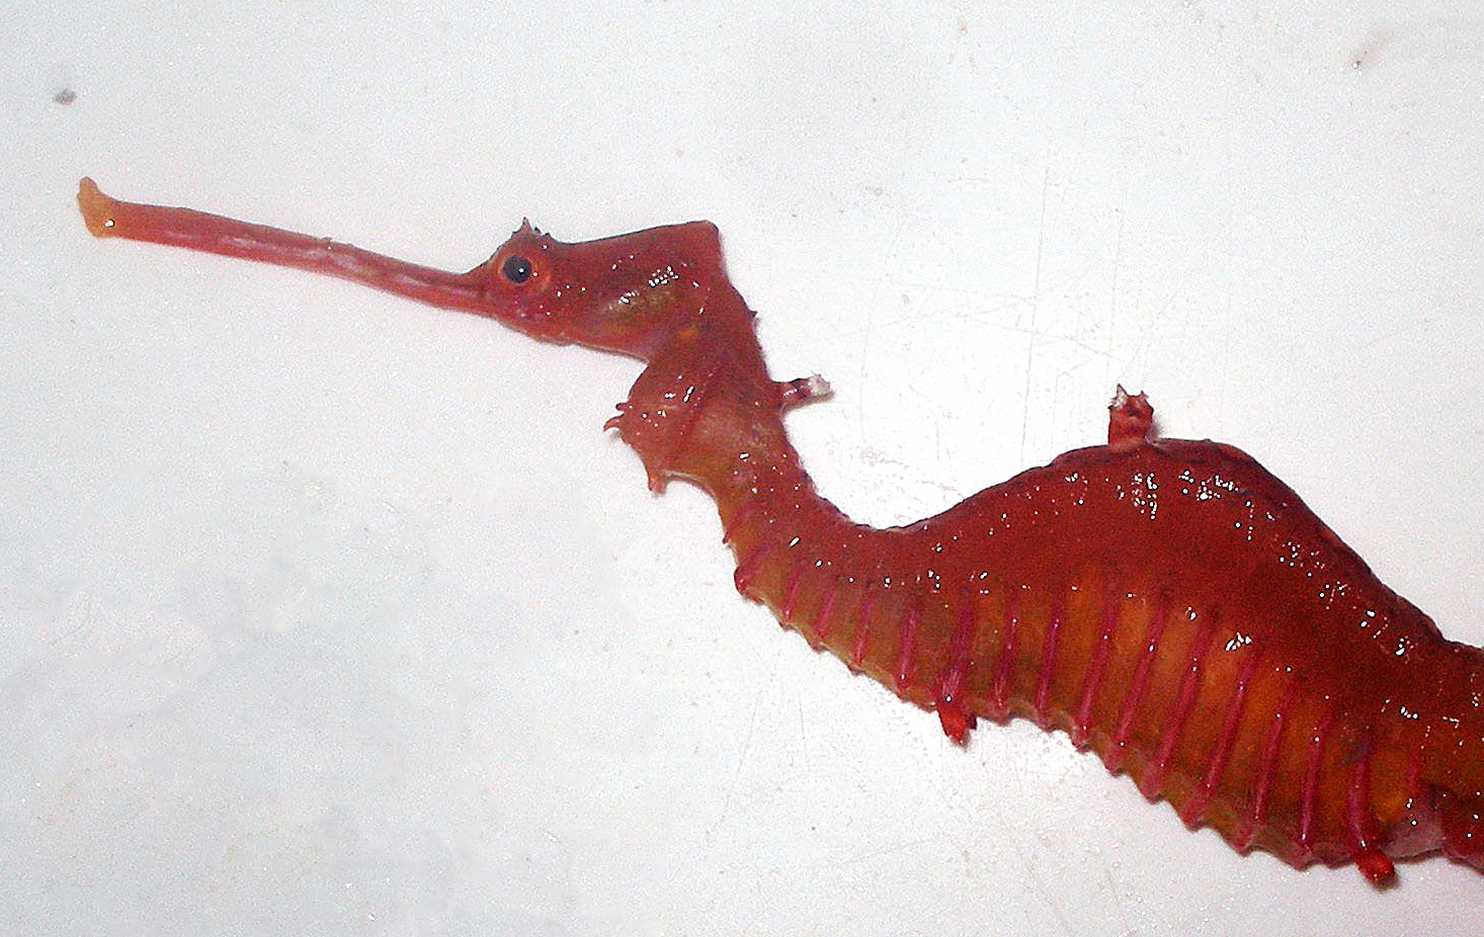 Elusive Ruby Seadragon Spotted In Nature For The First Time-2